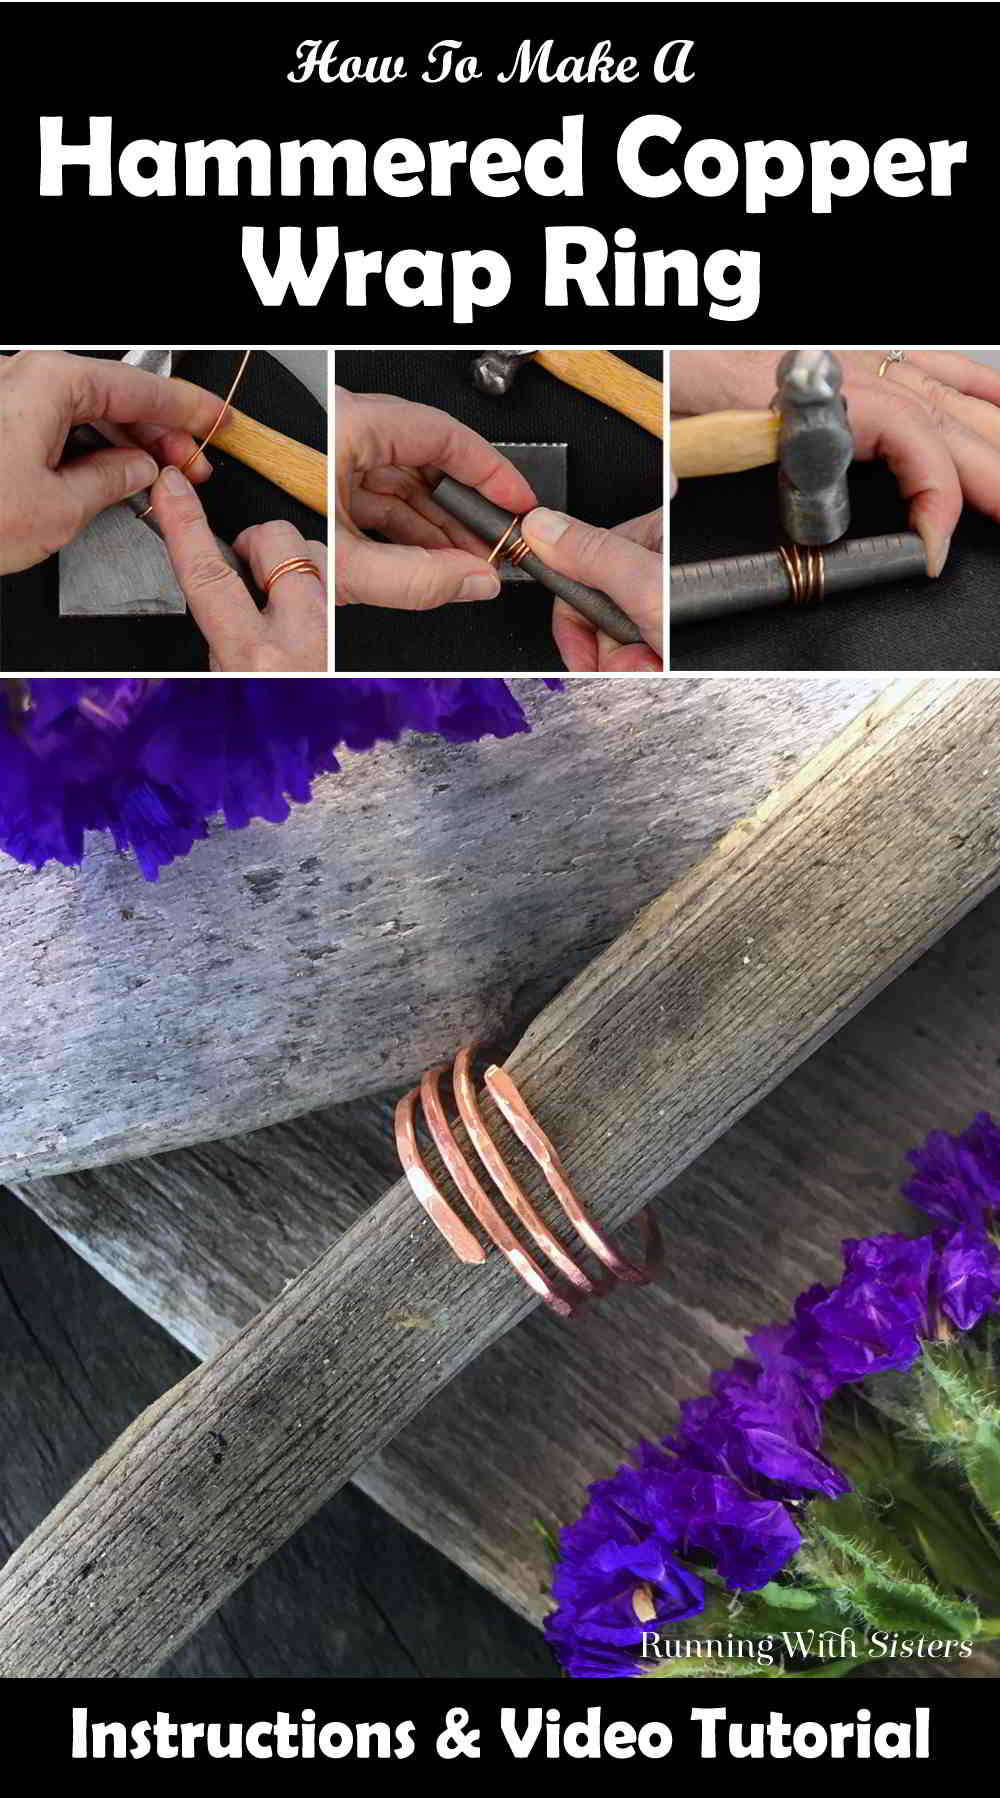 Transform a piece of copper wire into a Hammered Copper Wrap Ring. So cool and so artsy! Our step by step video will show you how!